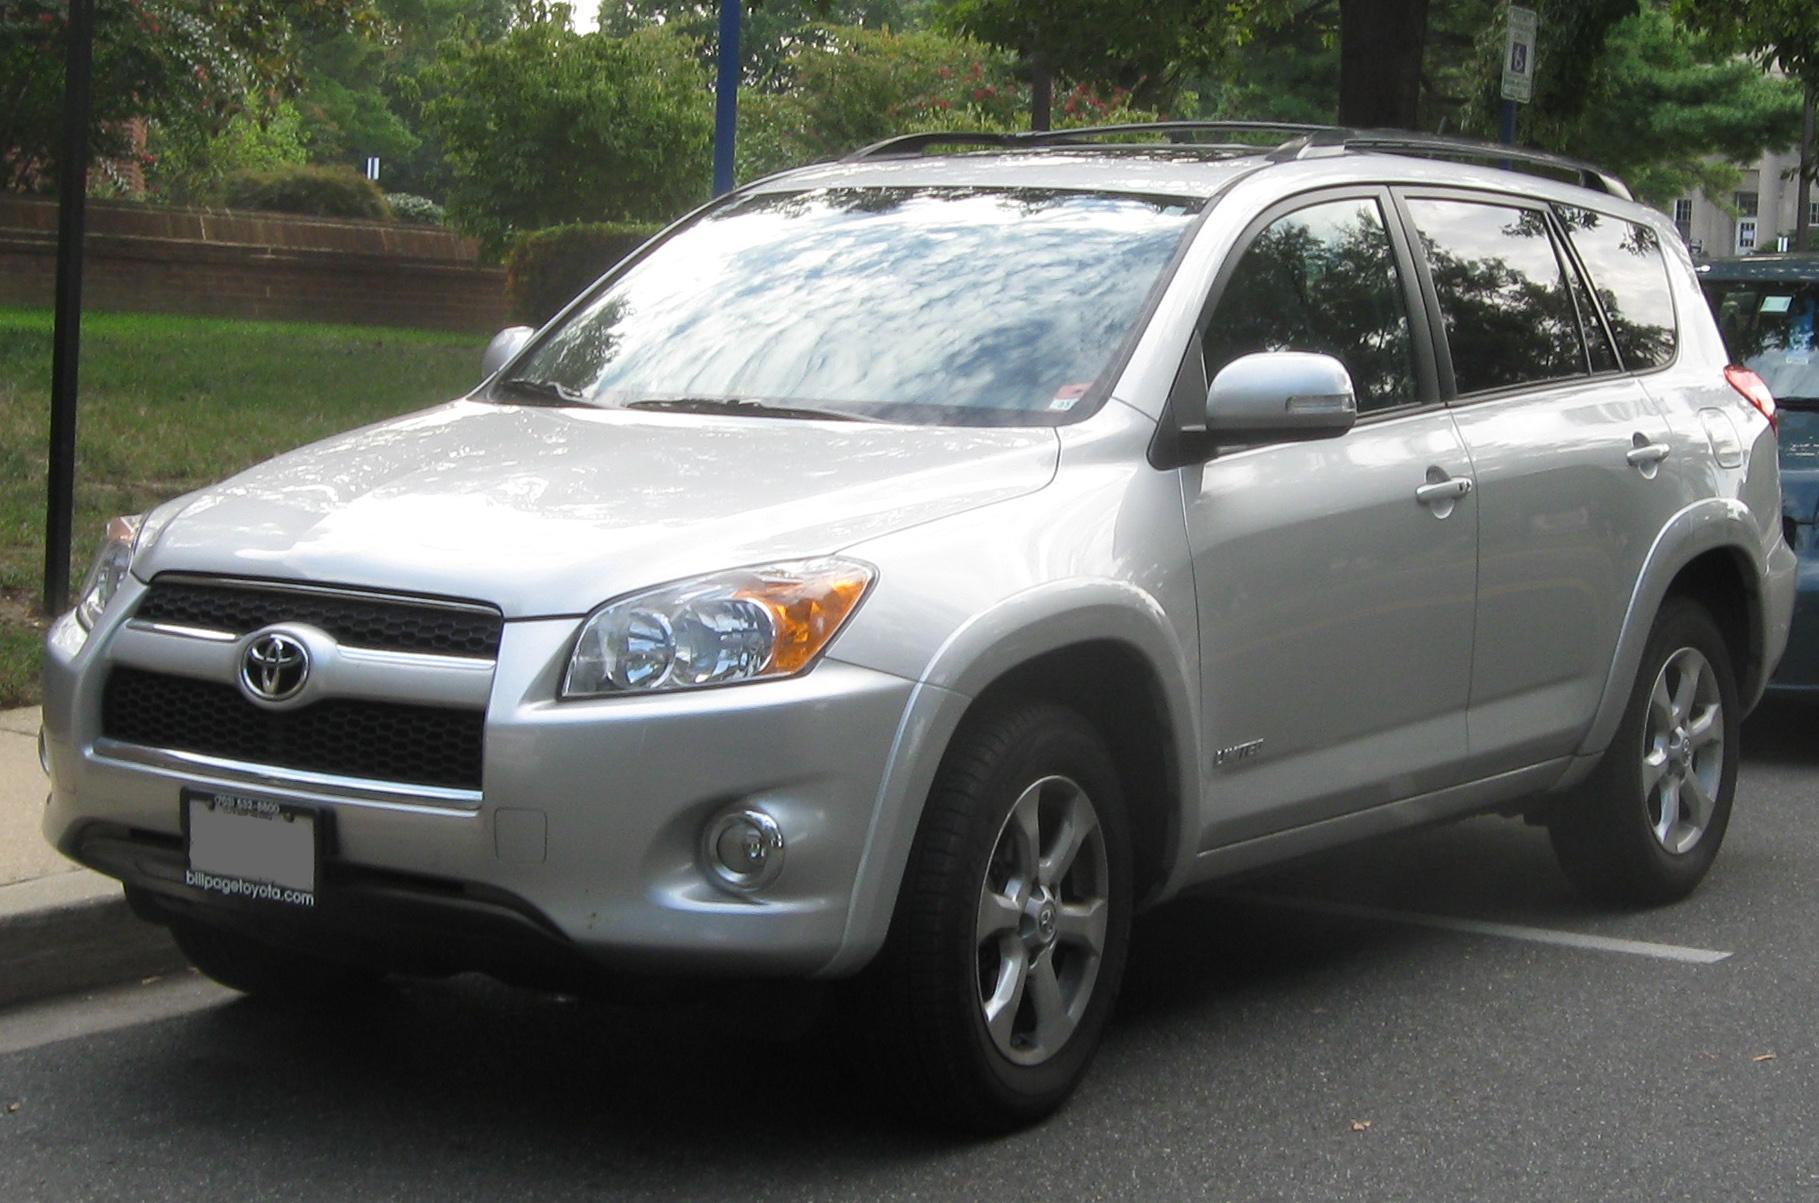 2009 toyota rav4 information and photos zombiedrive. Black Bedroom Furniture Sets. Home Design Ideas